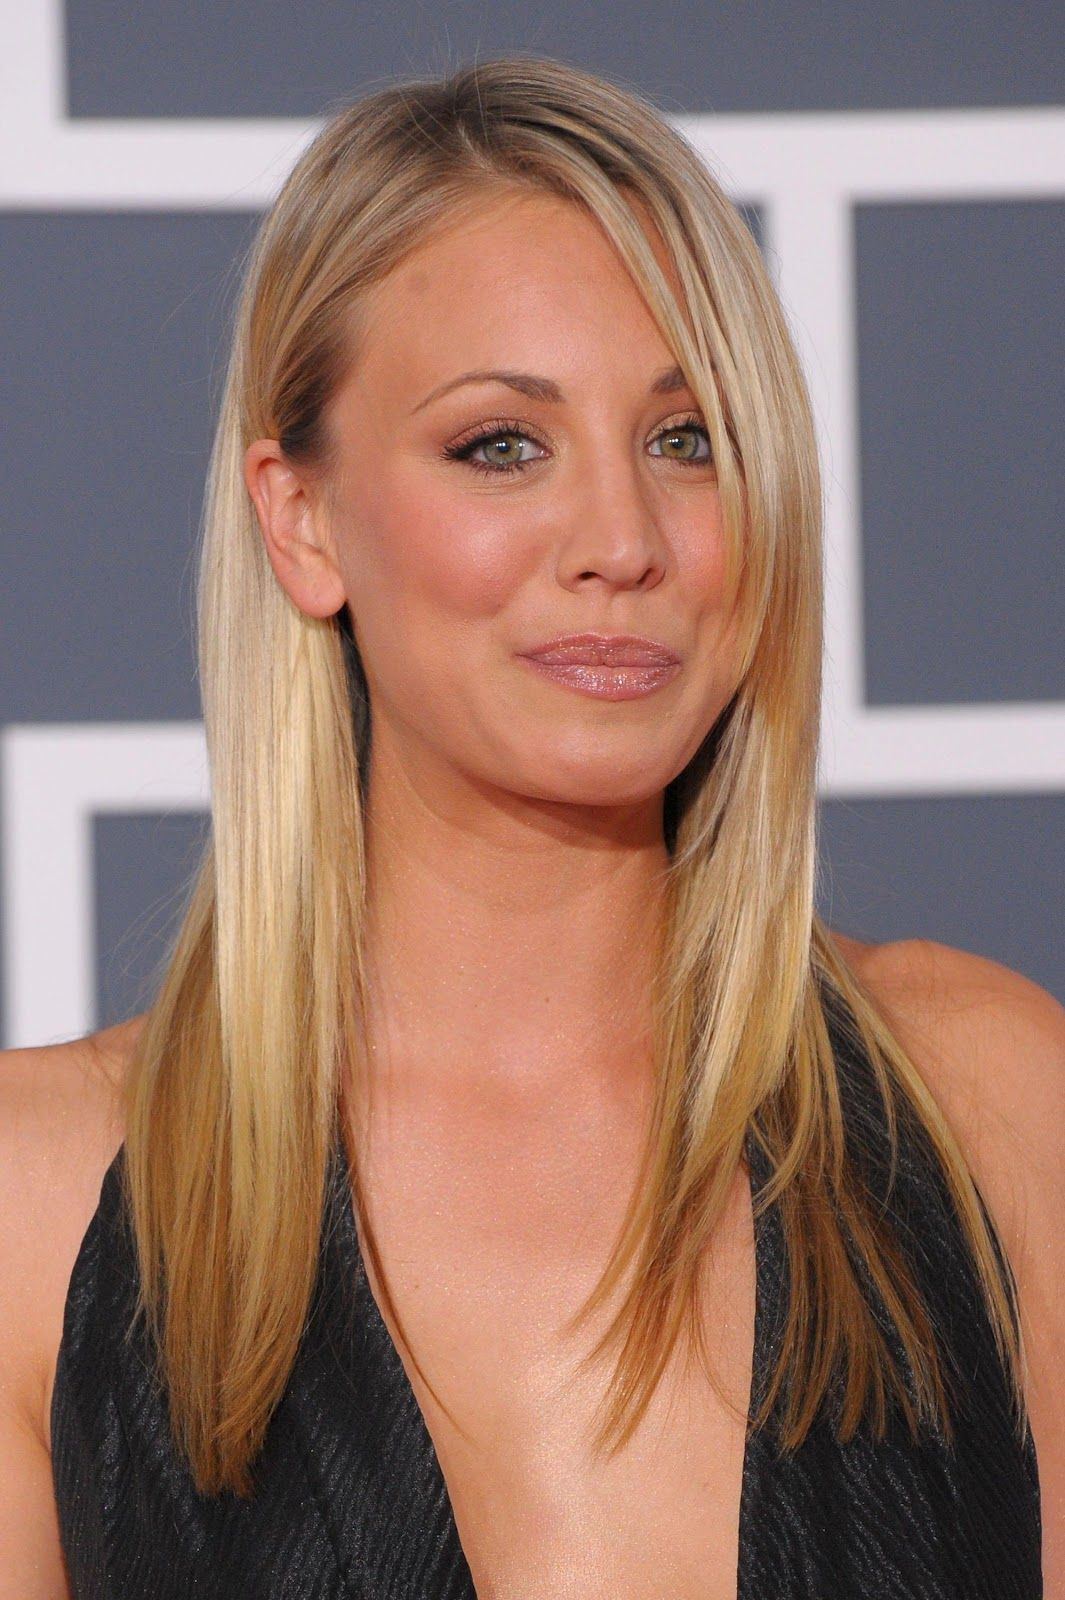 Kaley Cuoco Hairstyles Pictures Actress Wallpaper Pics Photos 3 Jpg 1 065 1 600 Pixels Kaley Cuoco Kaley Cuoco Hair Kayley Cuoco